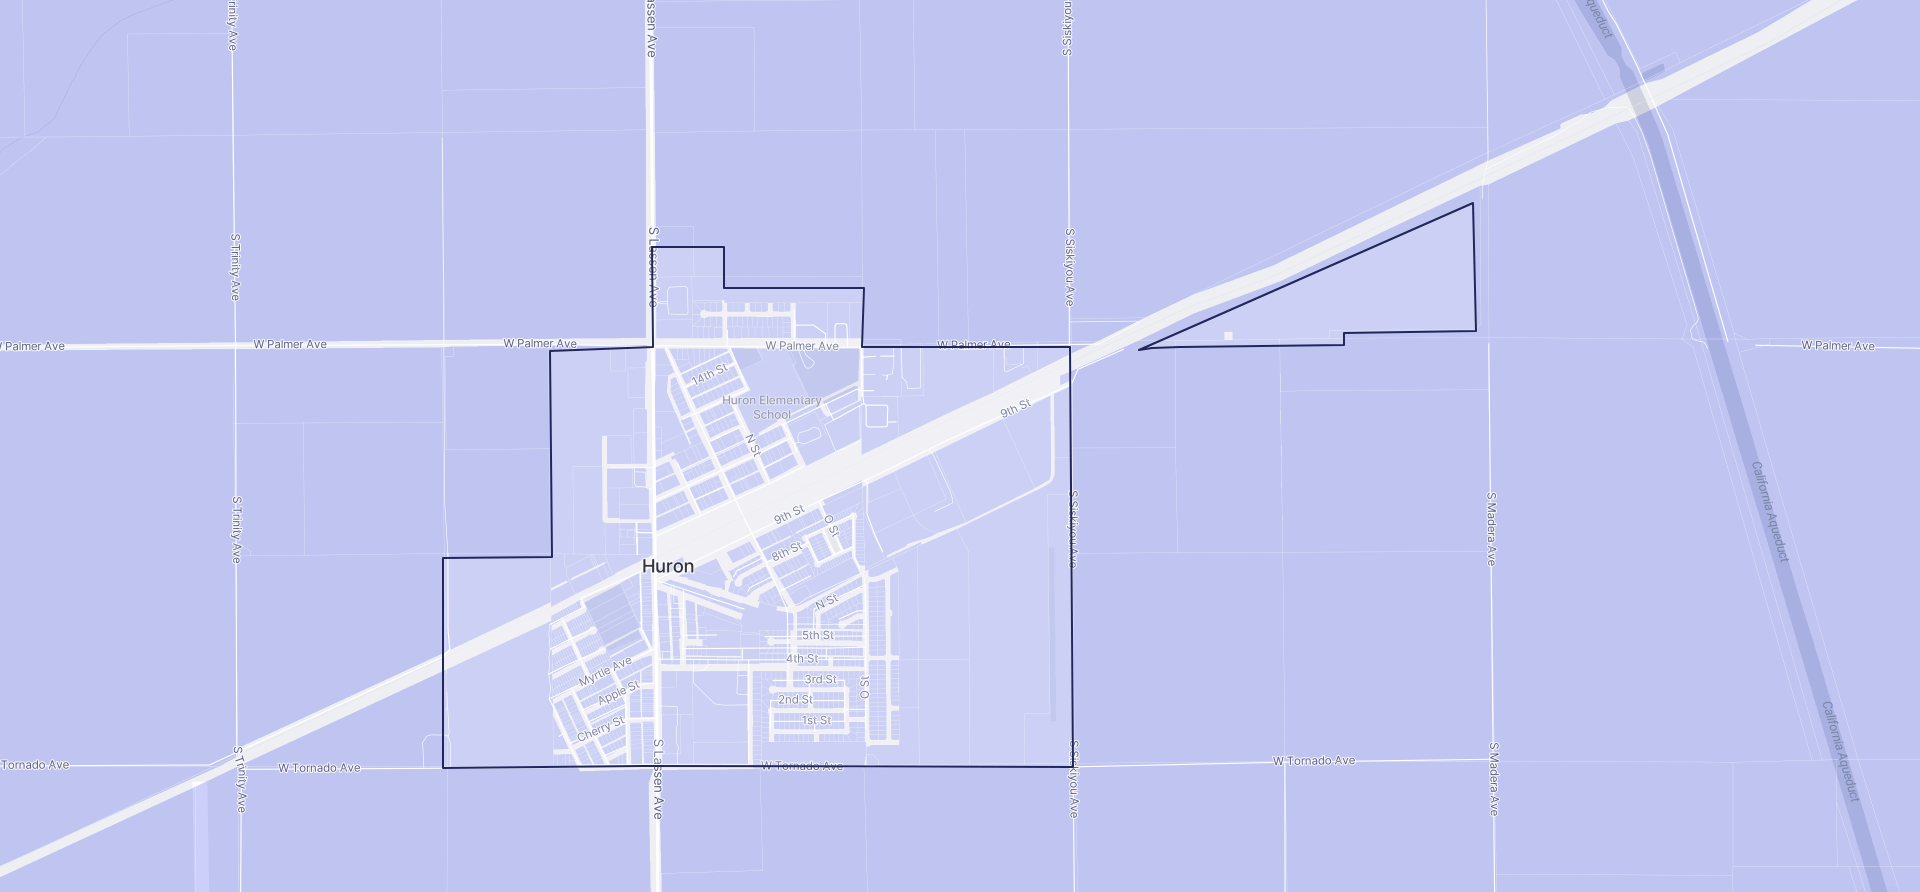 Image of Huron boundaries on a map.